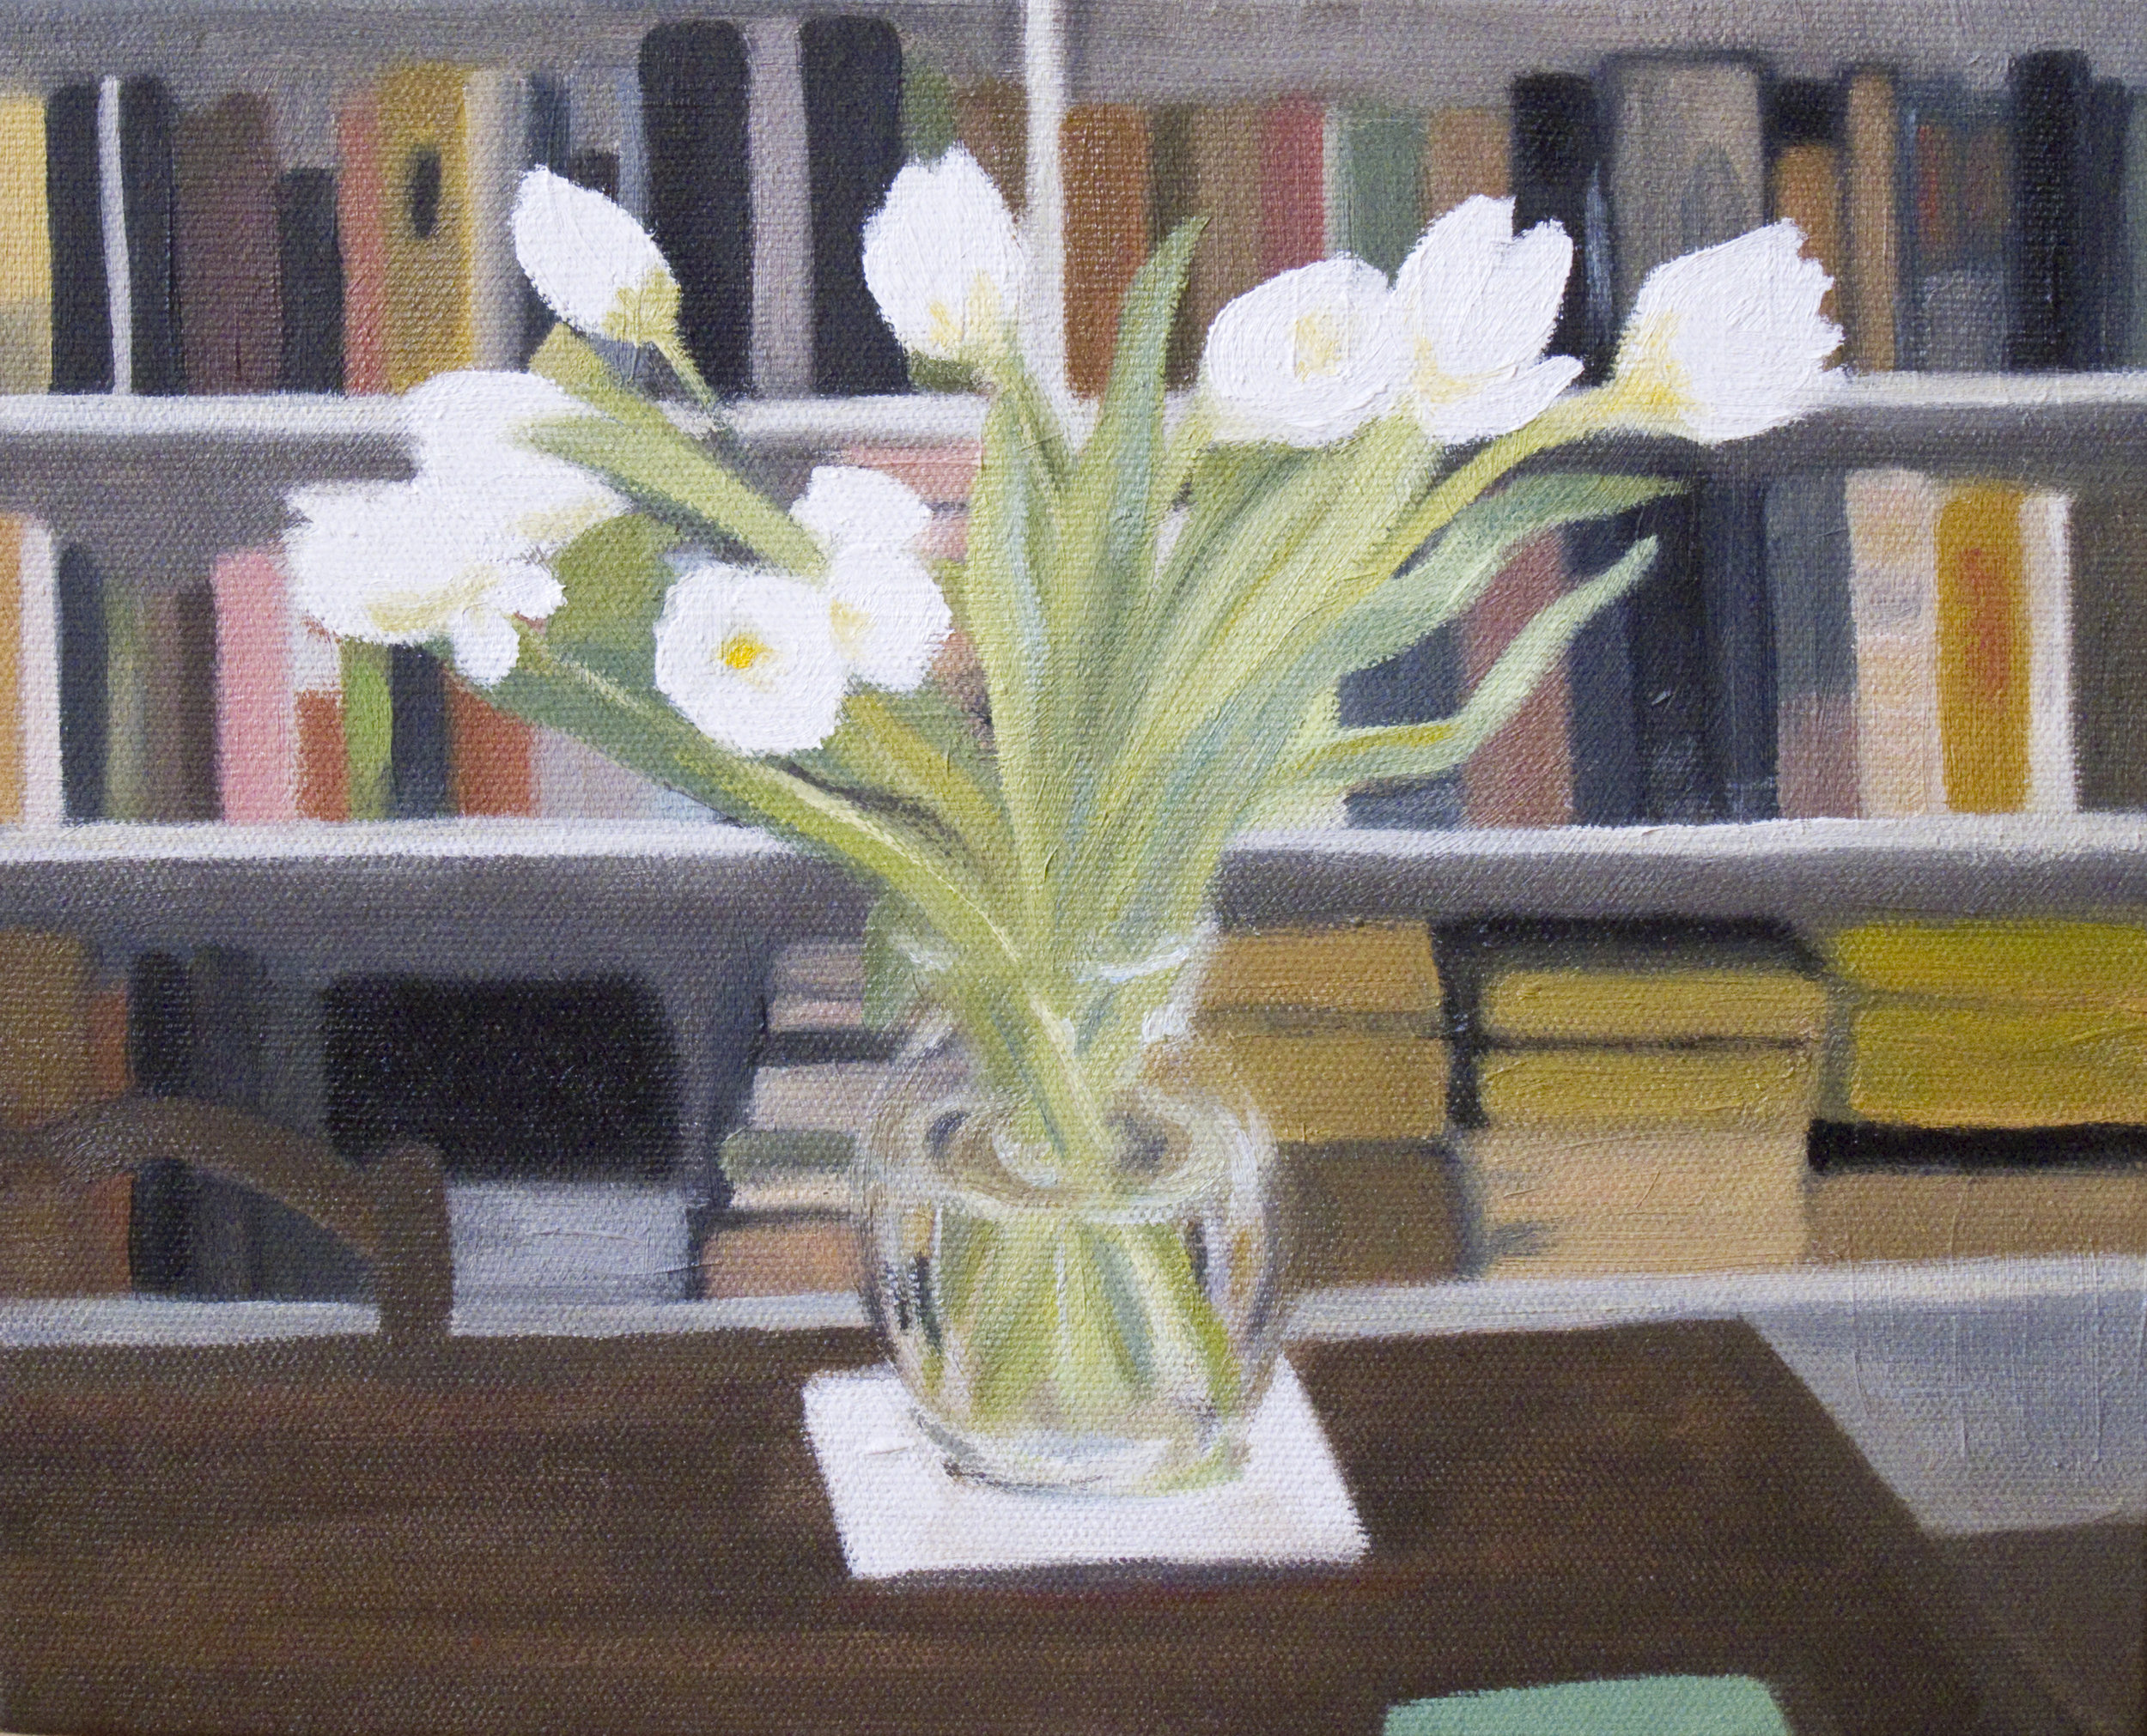 Tulips. 8x10 inches oil on canvas. (sold)